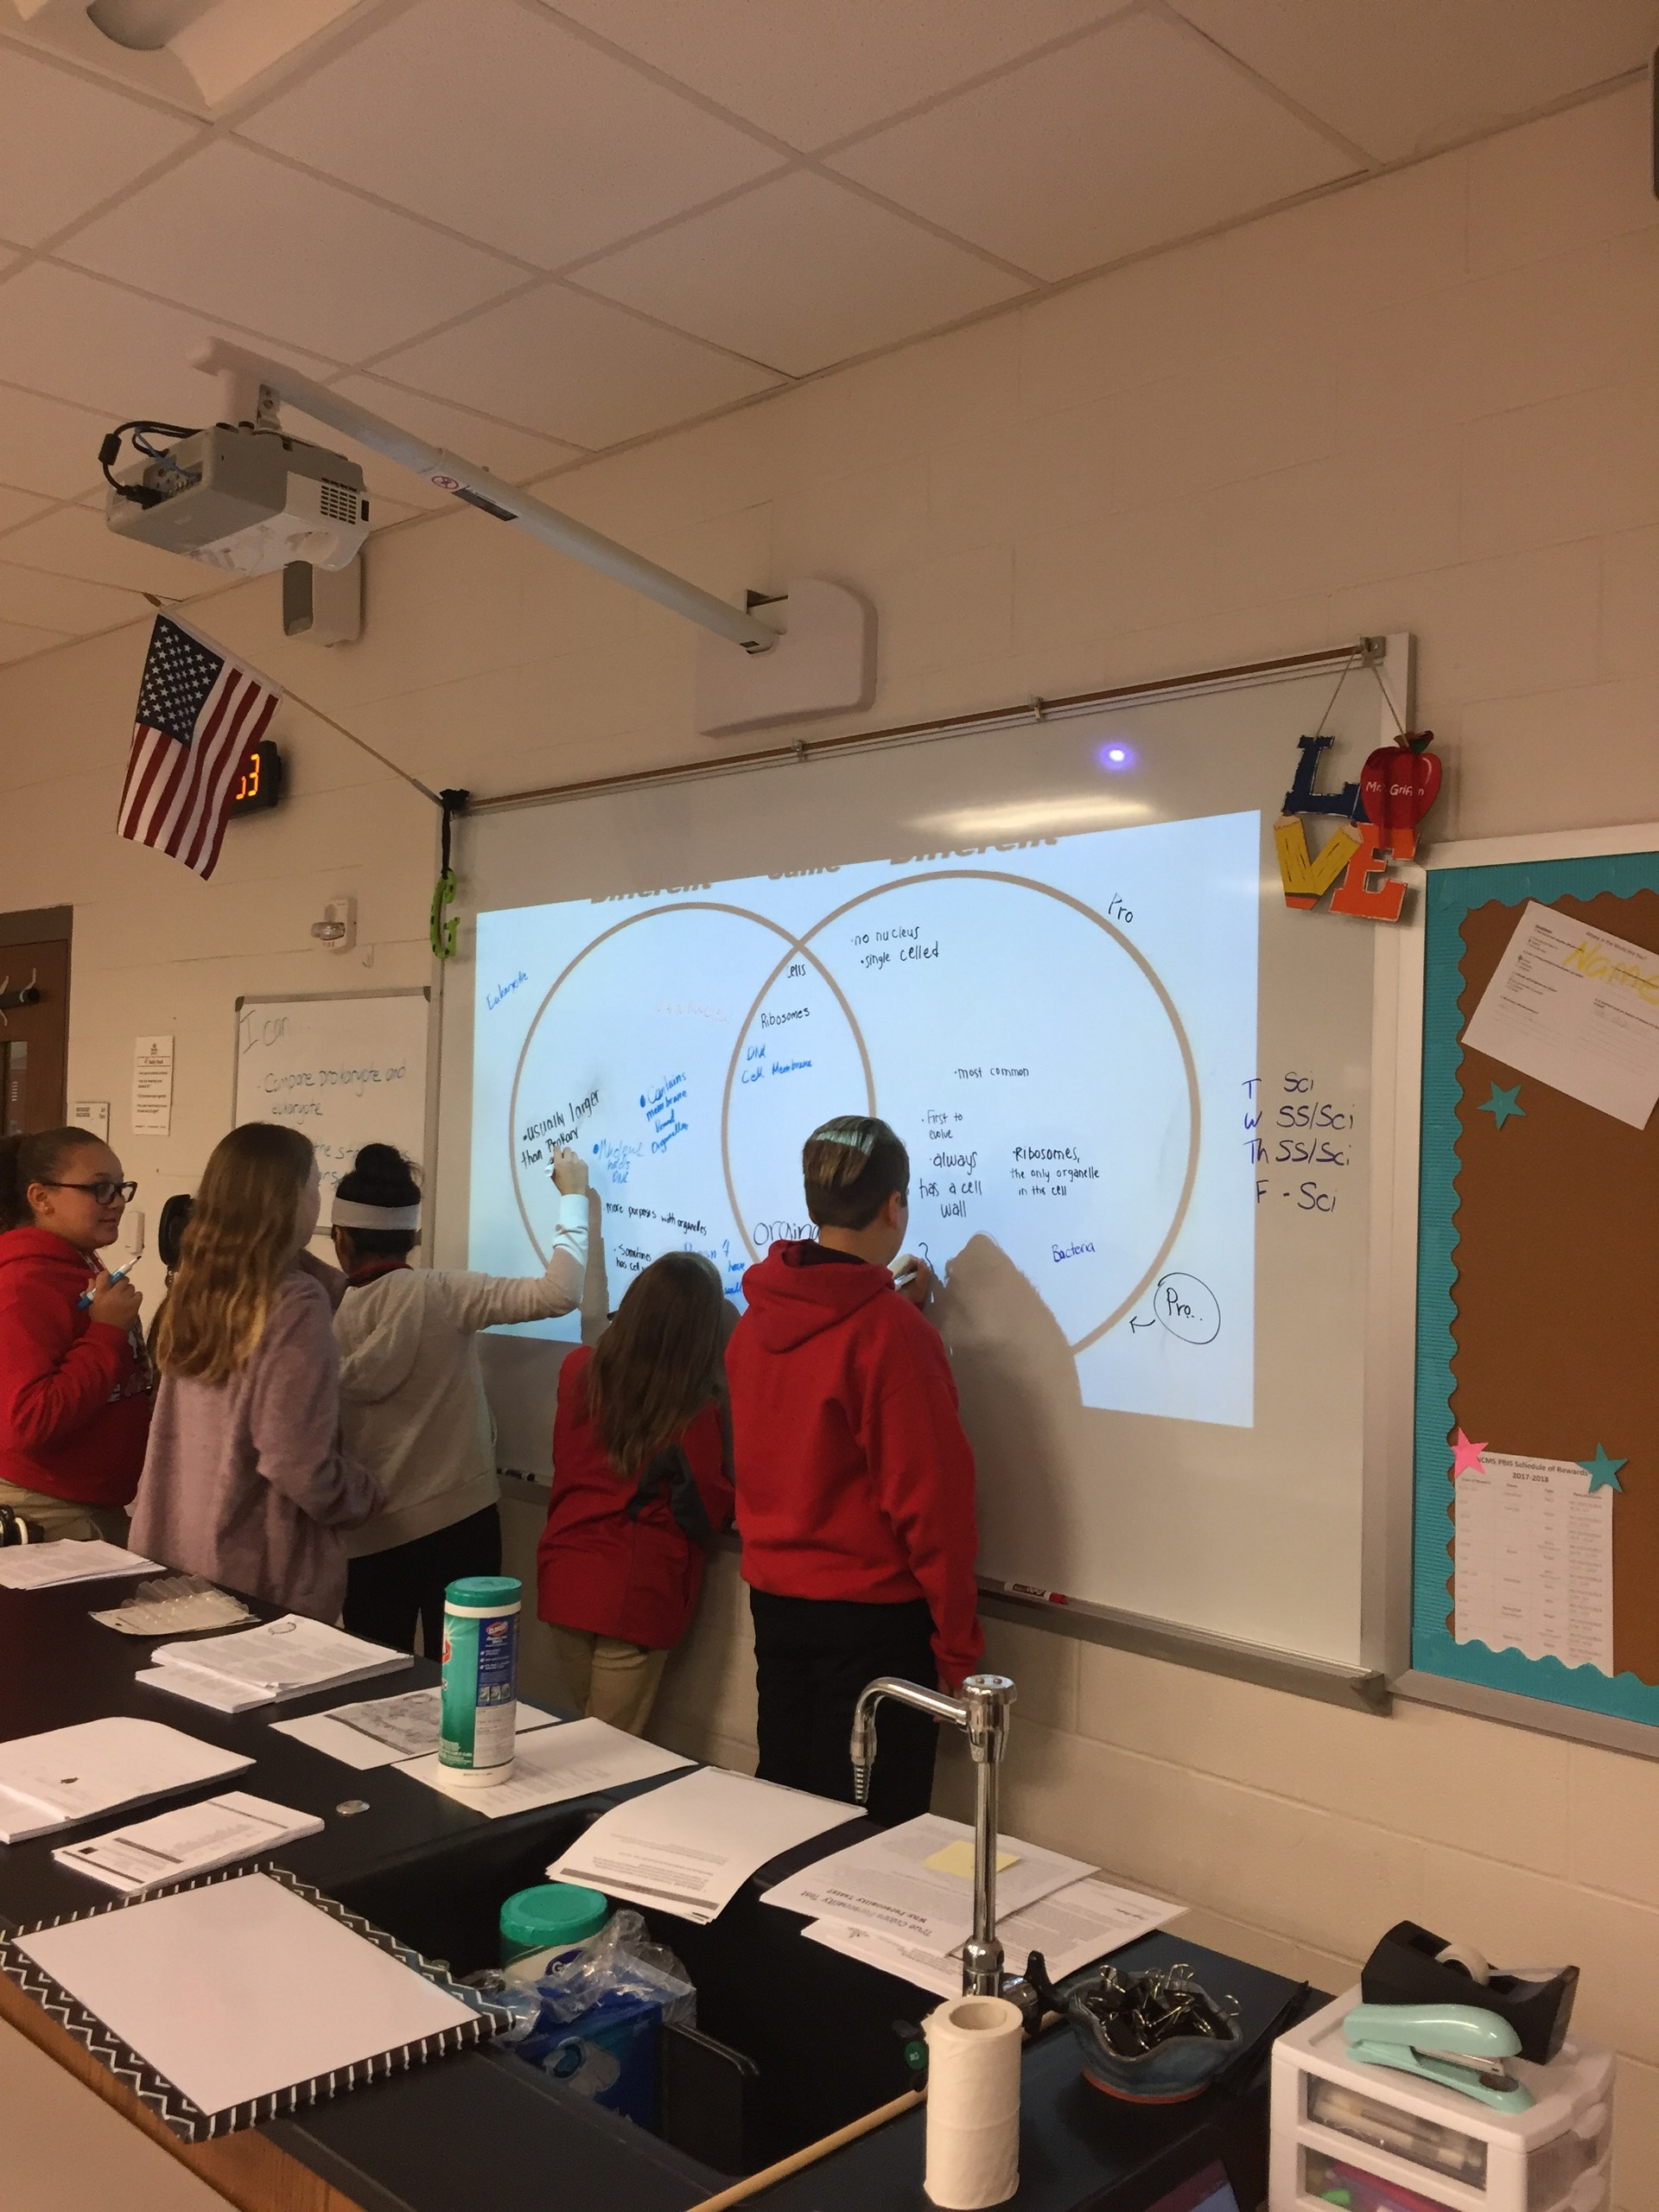 Worked as a class to compare Prokaryotic and Eukaryotic Cells